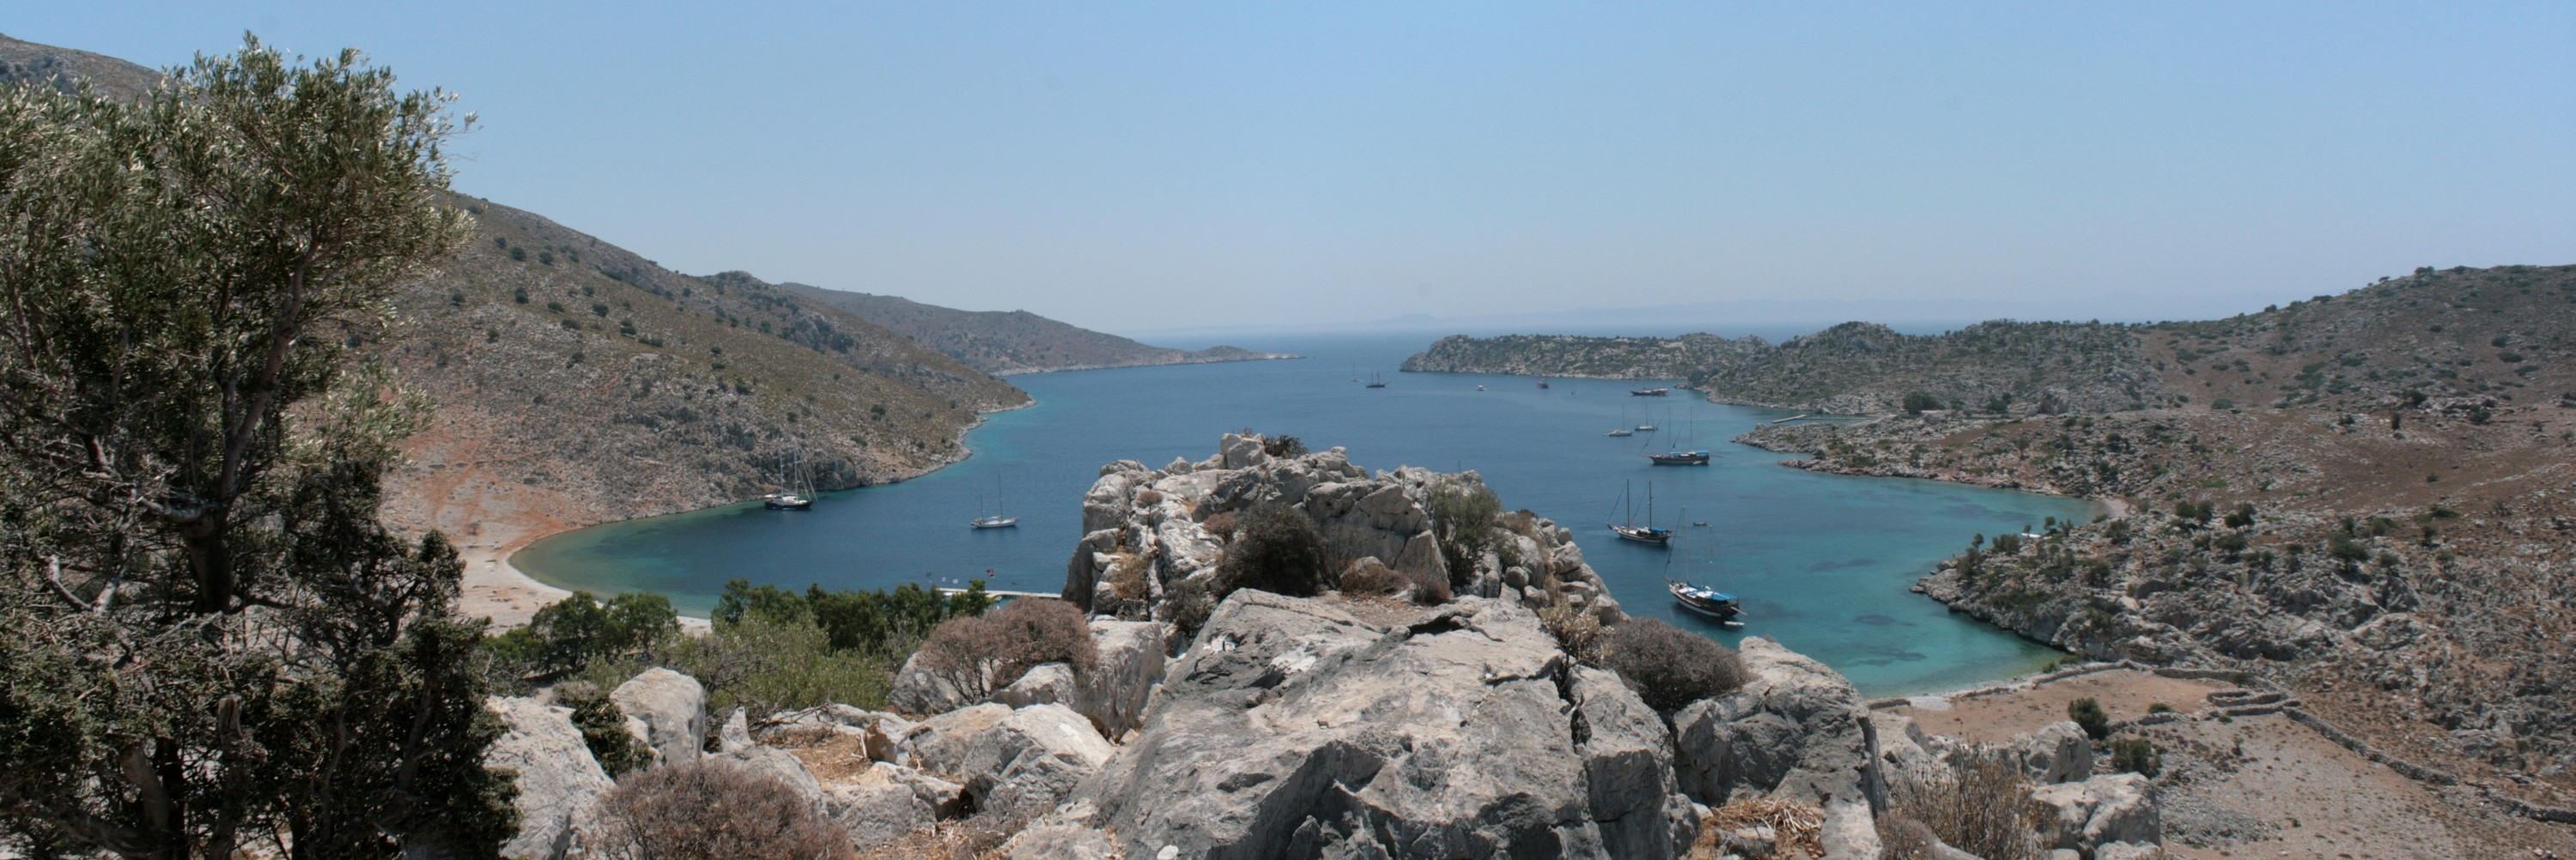 Fig. 3. View from the acropolis of Loryma across the bay